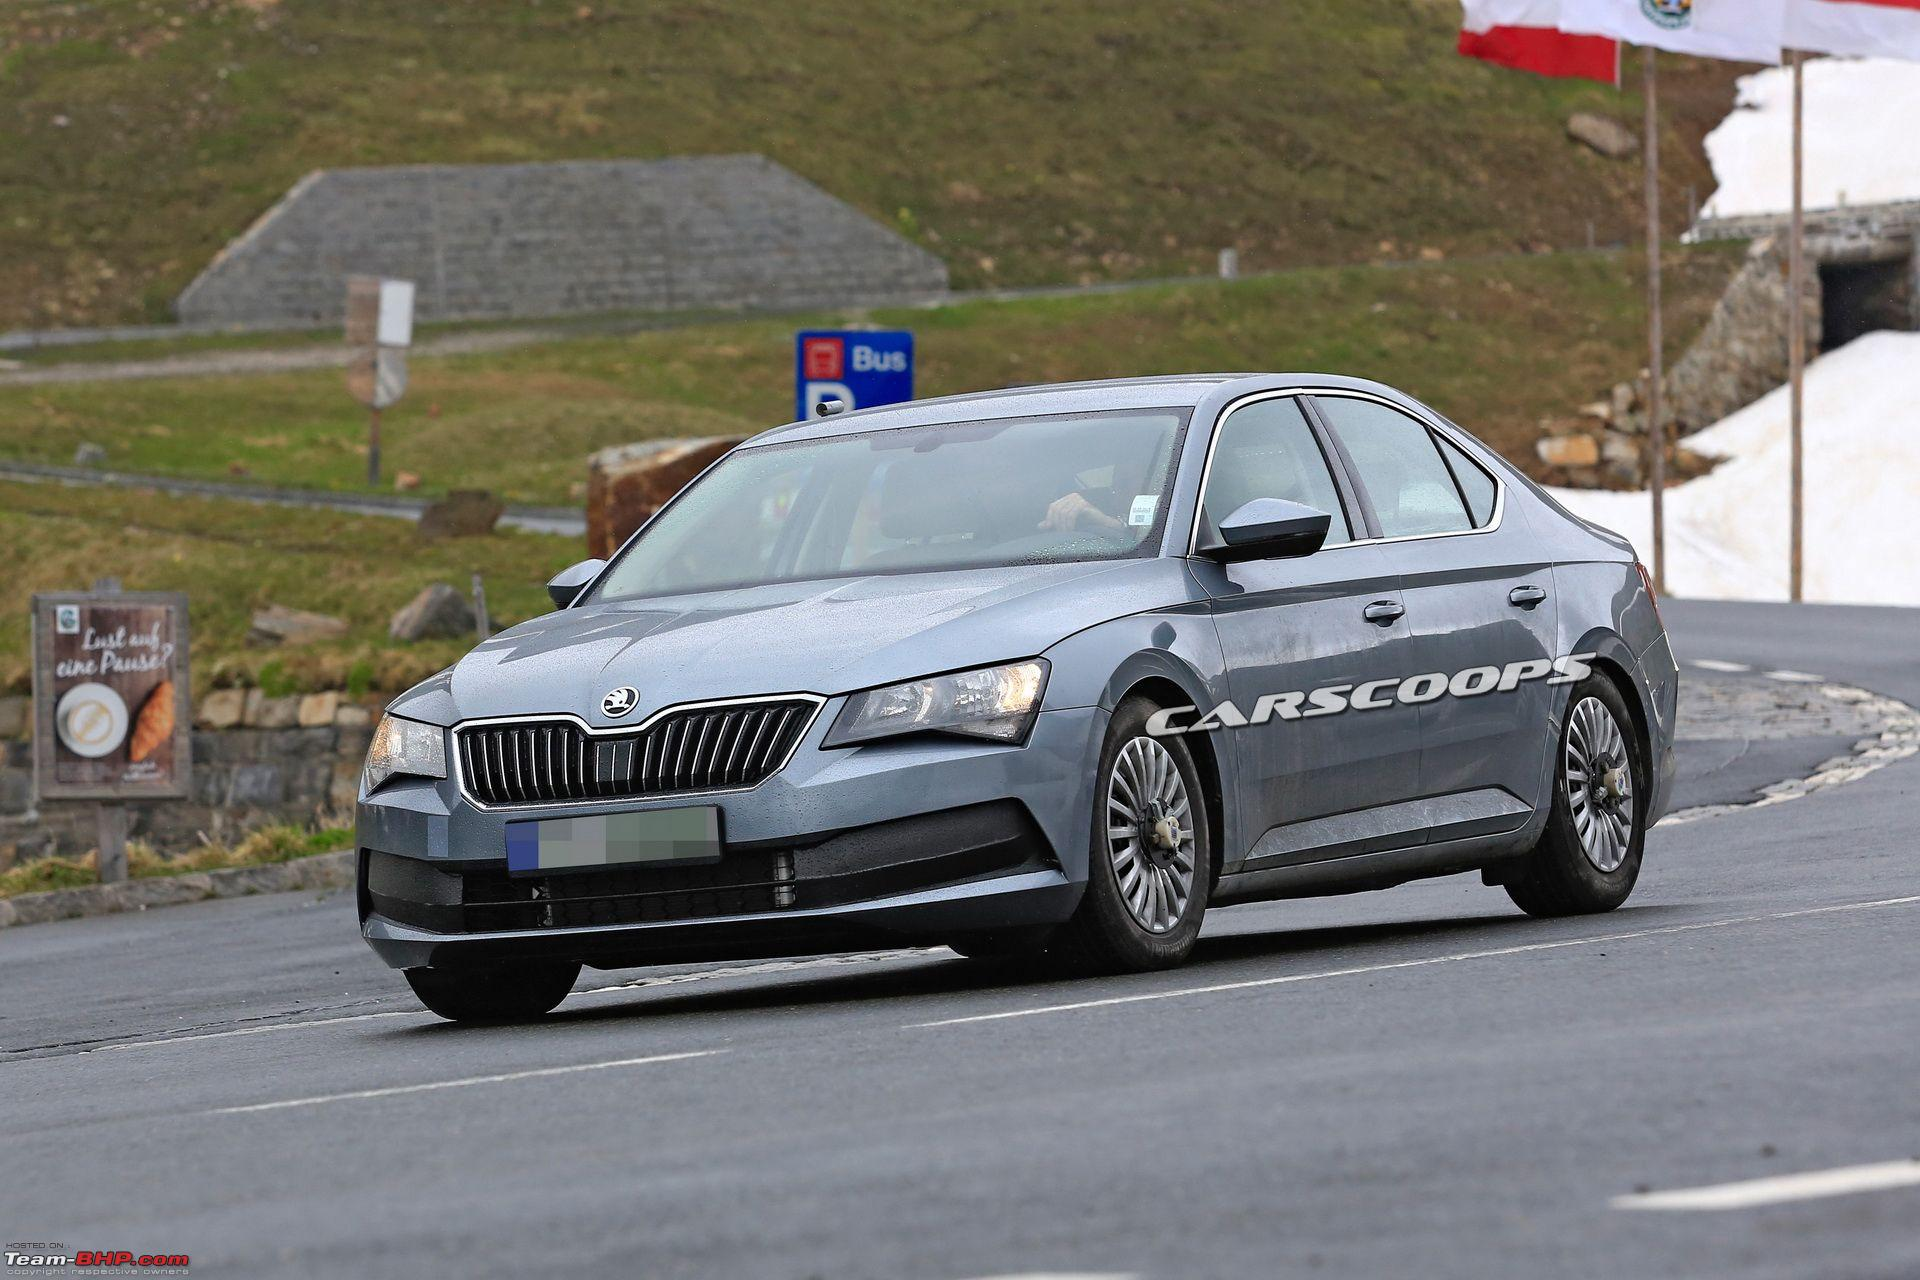 90 All New Spy Shots Skoda Superb Price and Review